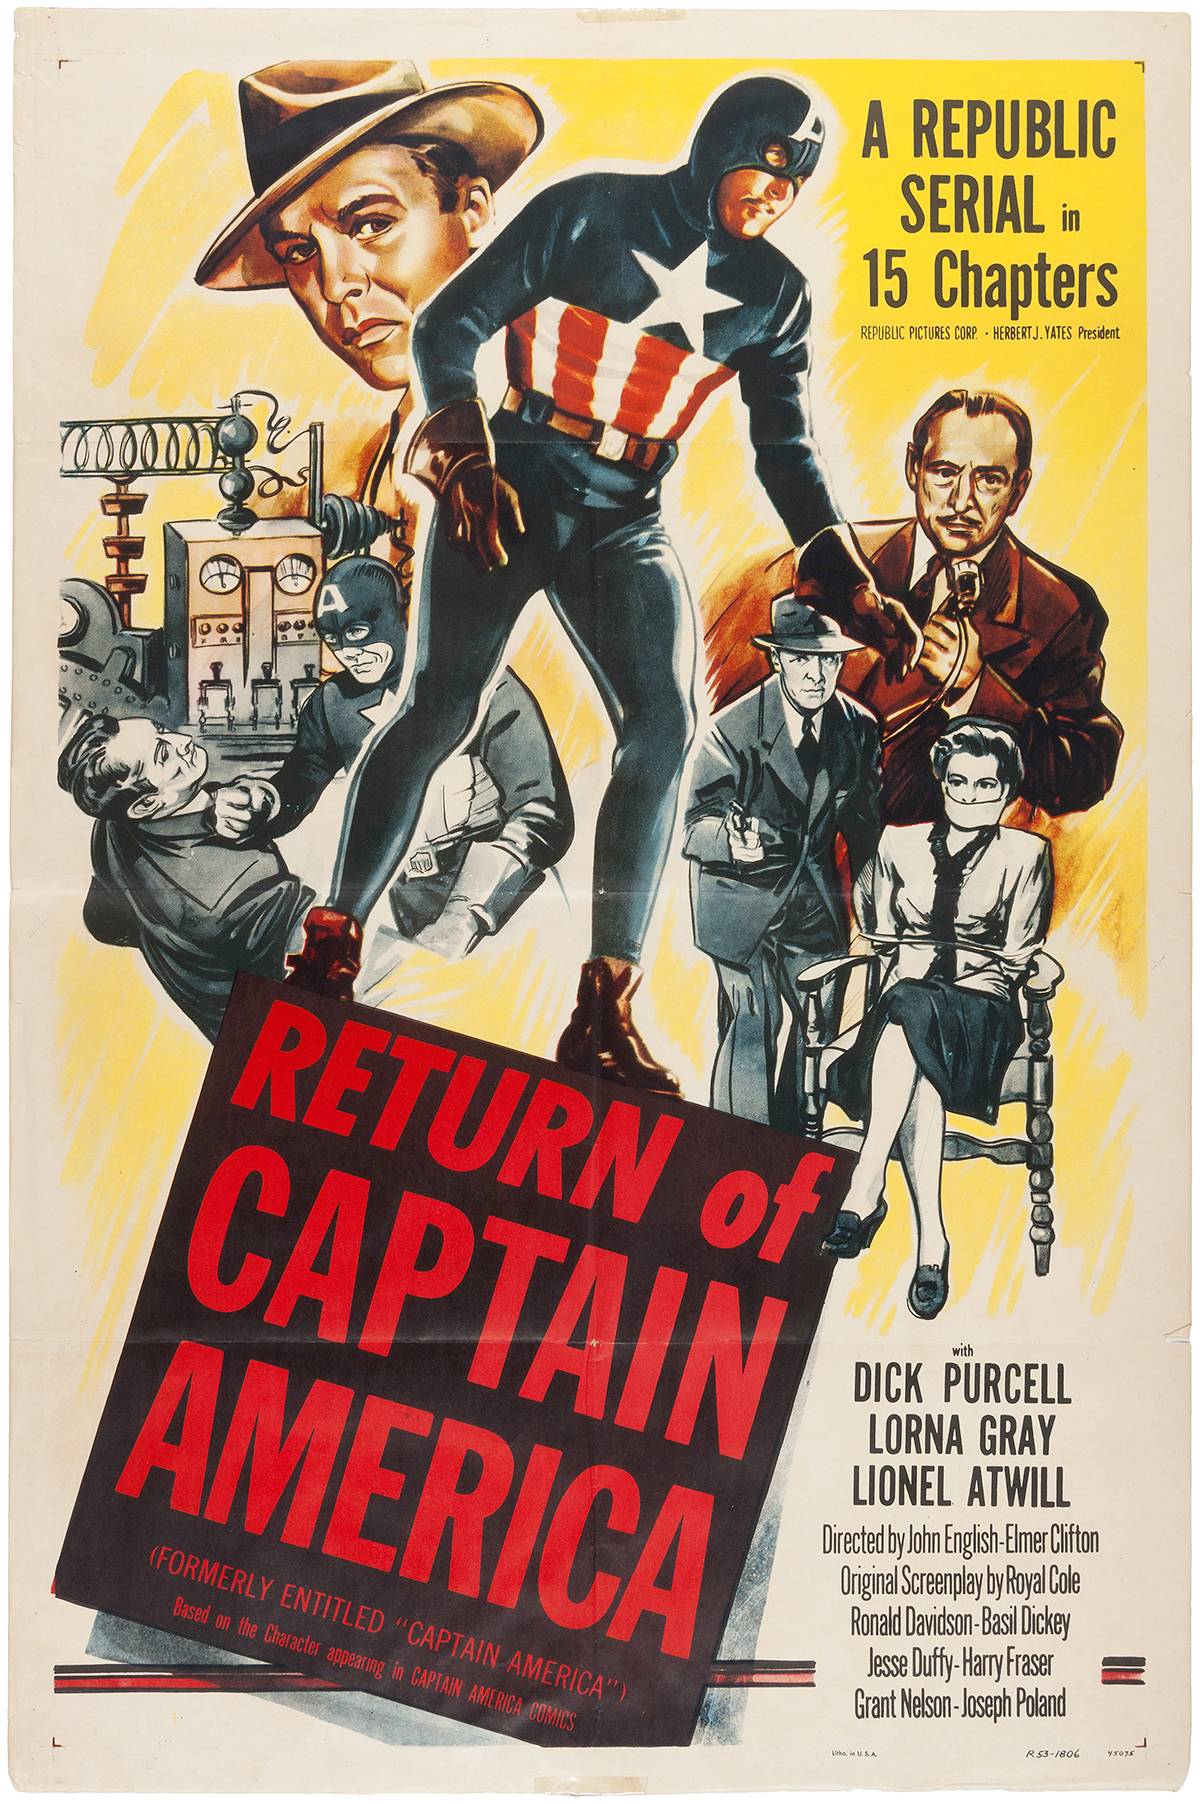 captain-america-serial-republic-movie-poster